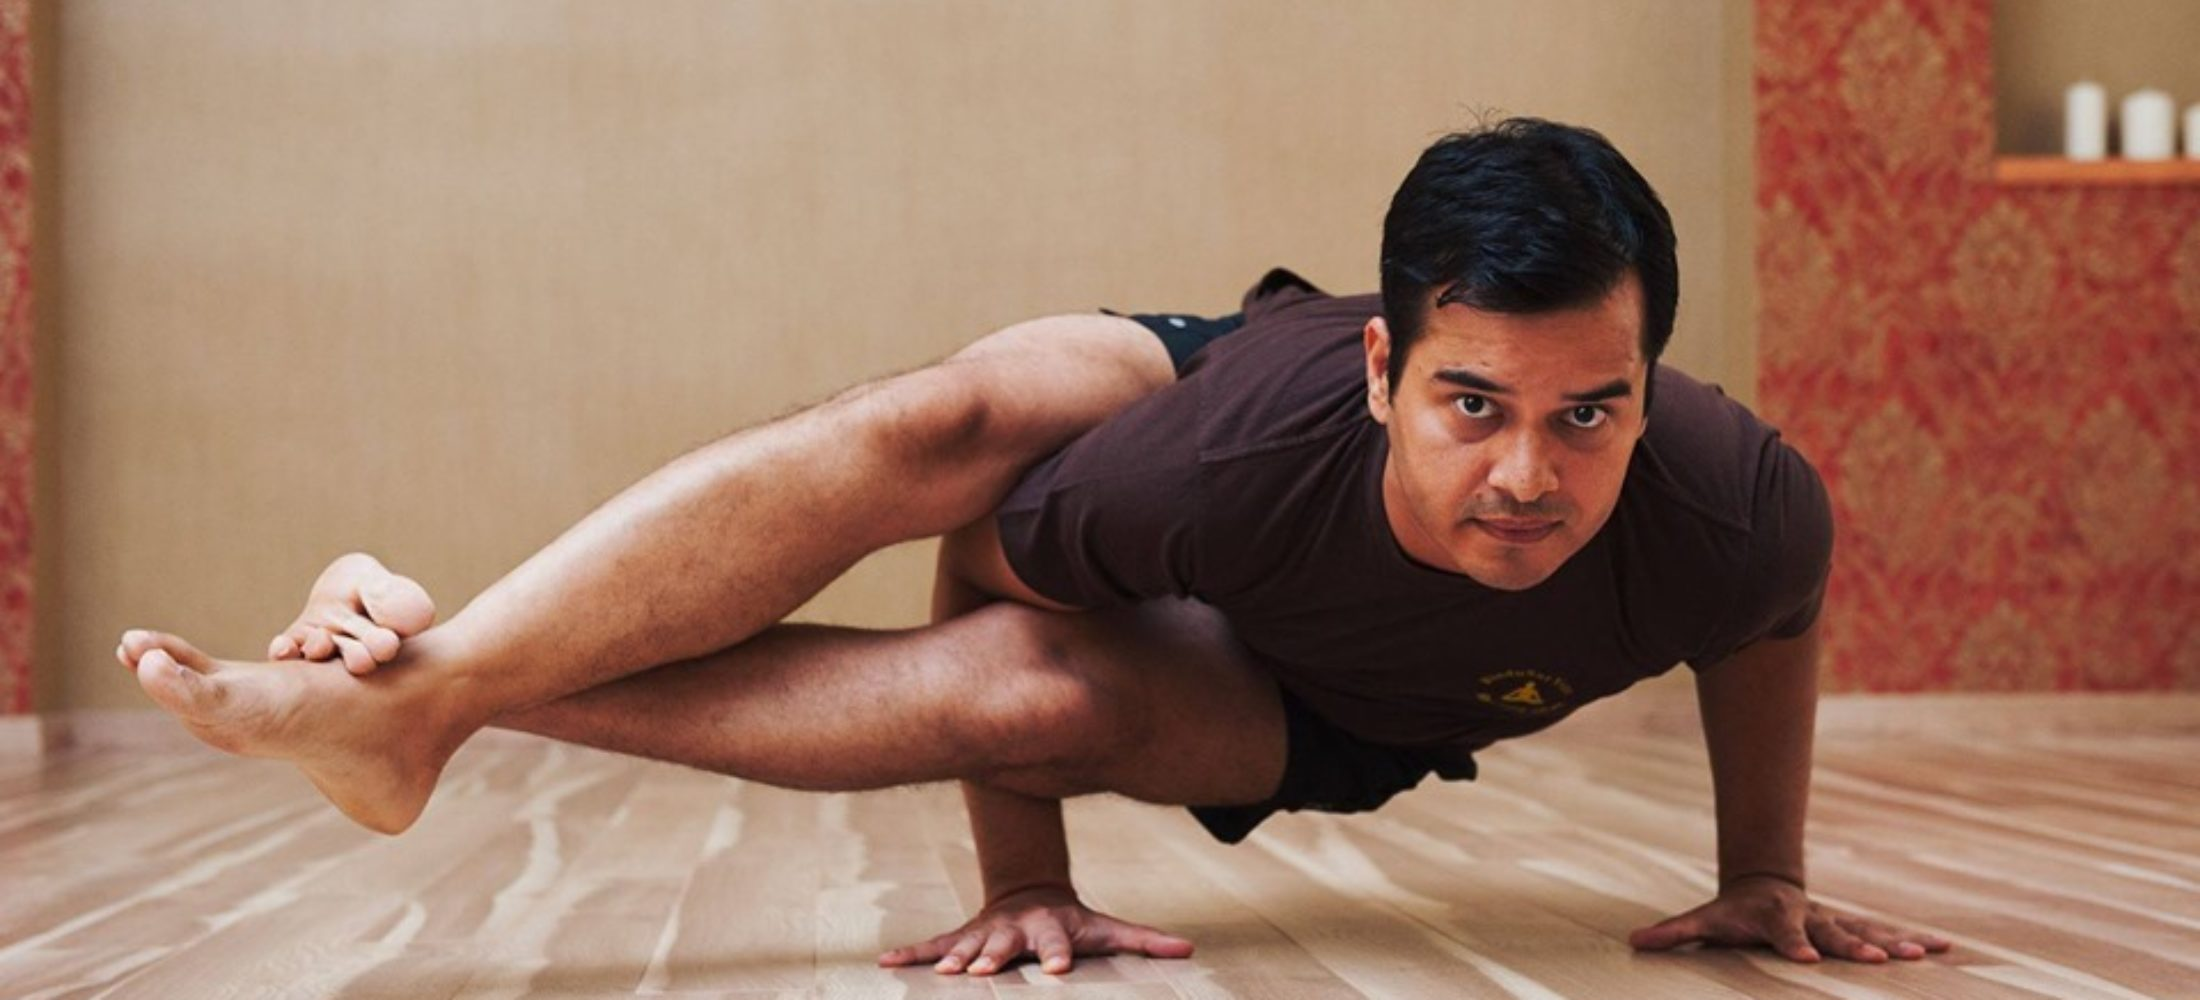 Moola workshop (Hip opening) - Vinyasa Krama based - Mukesh K.